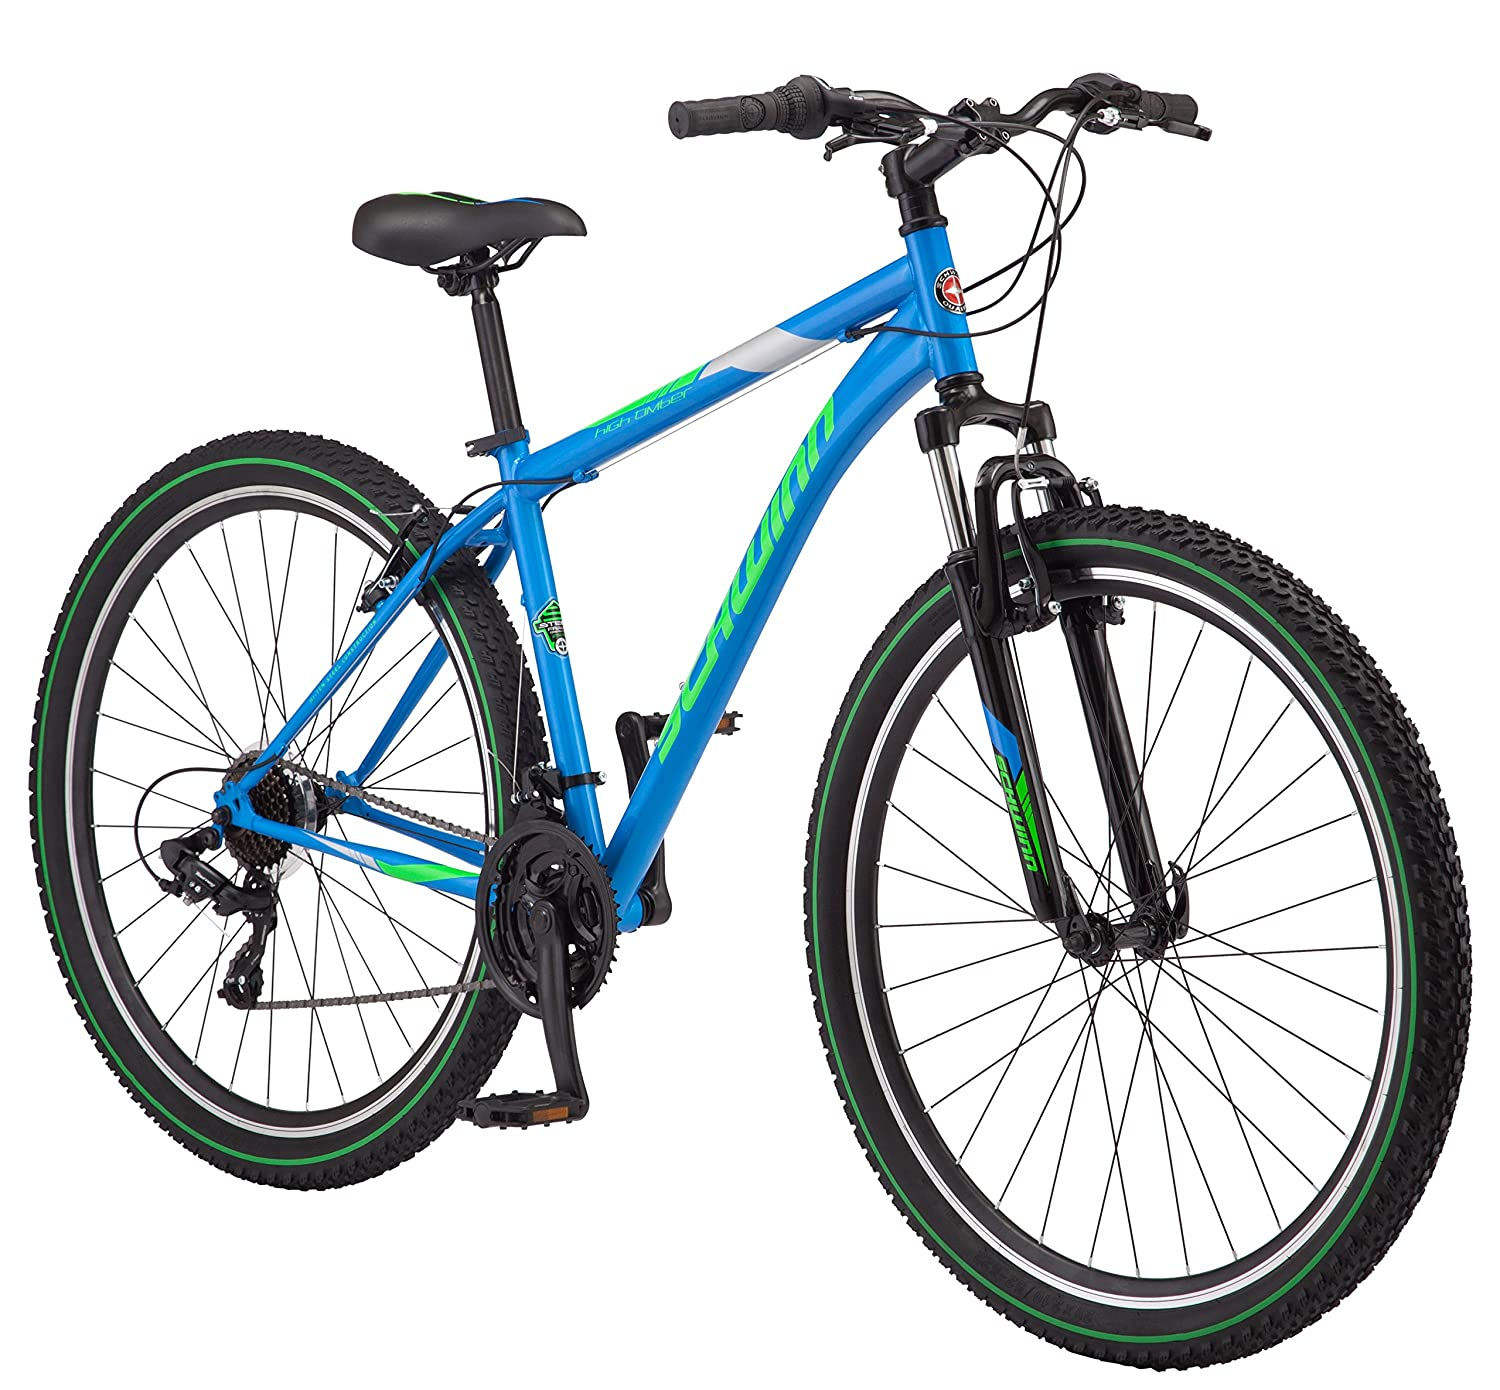 Top 10 Best Mountain Bikes (2020 Reviews & Buying Guide) 5